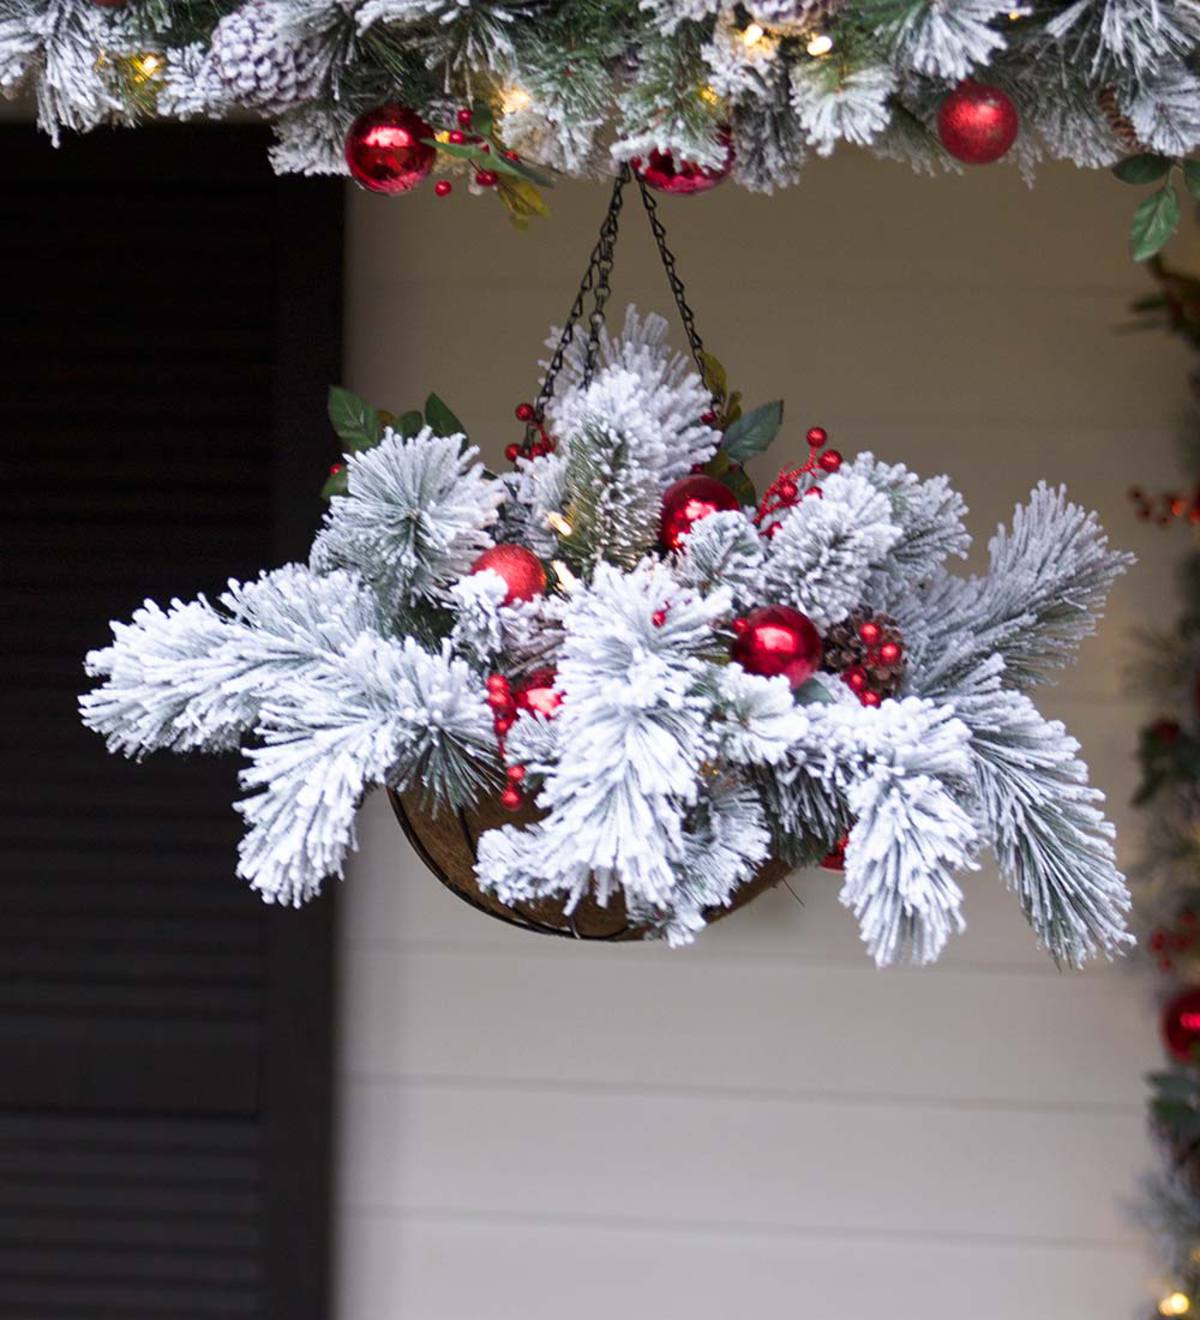 fairfax lighted decorated holiday hanging basket - Hanging Lighted Christmas Decorations